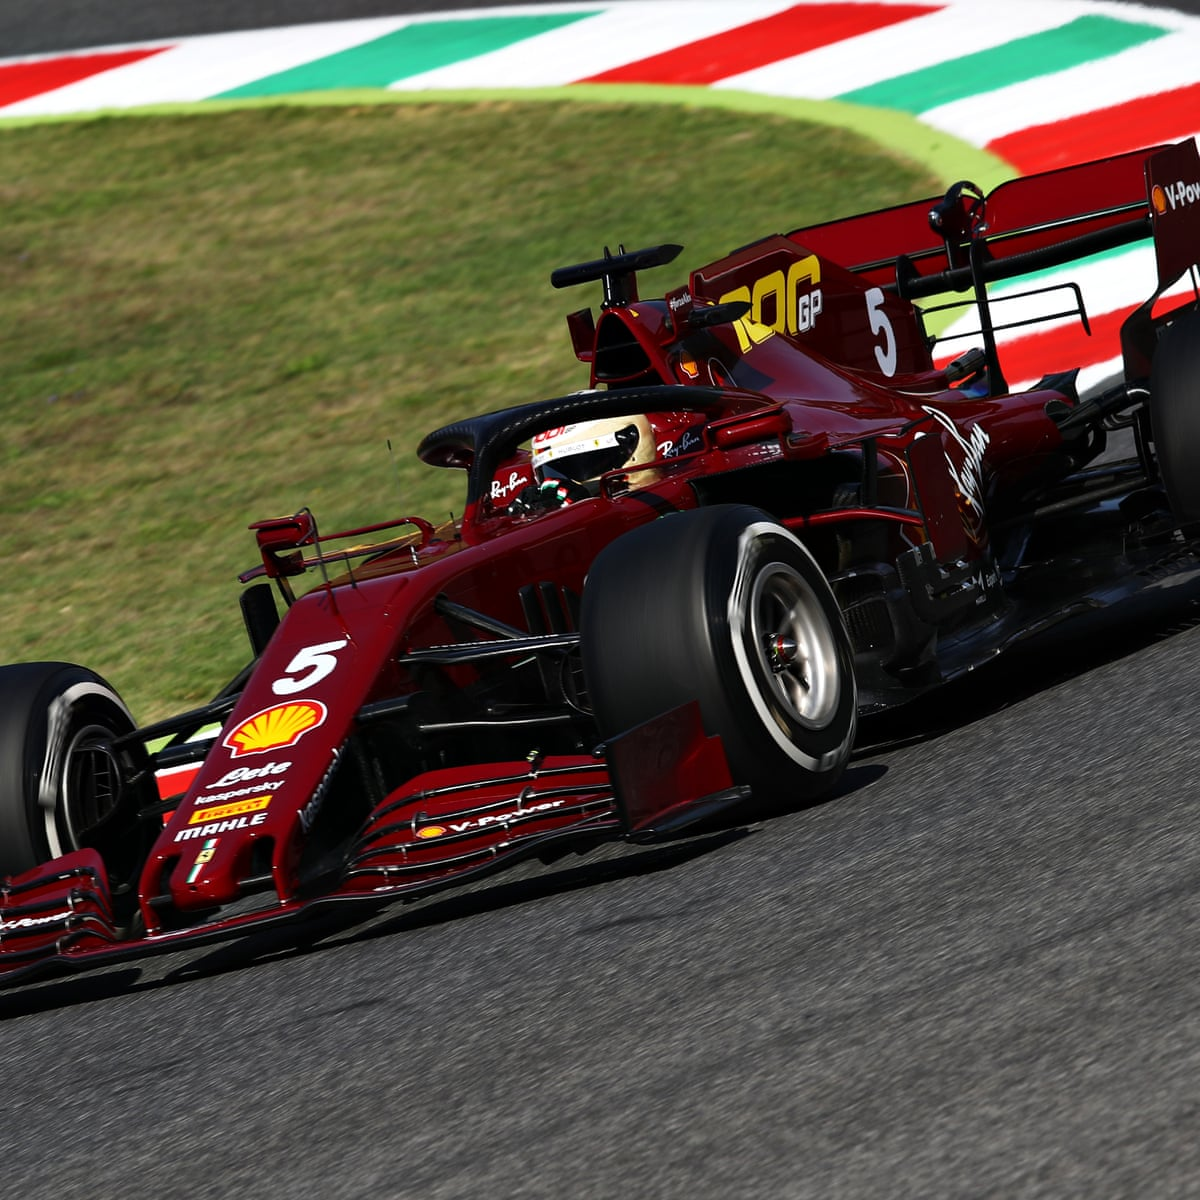 F1 Salutes Iconic Ferrari And Team S 1 000th Race At Tuscan Grand Prix Formula One The Guardian